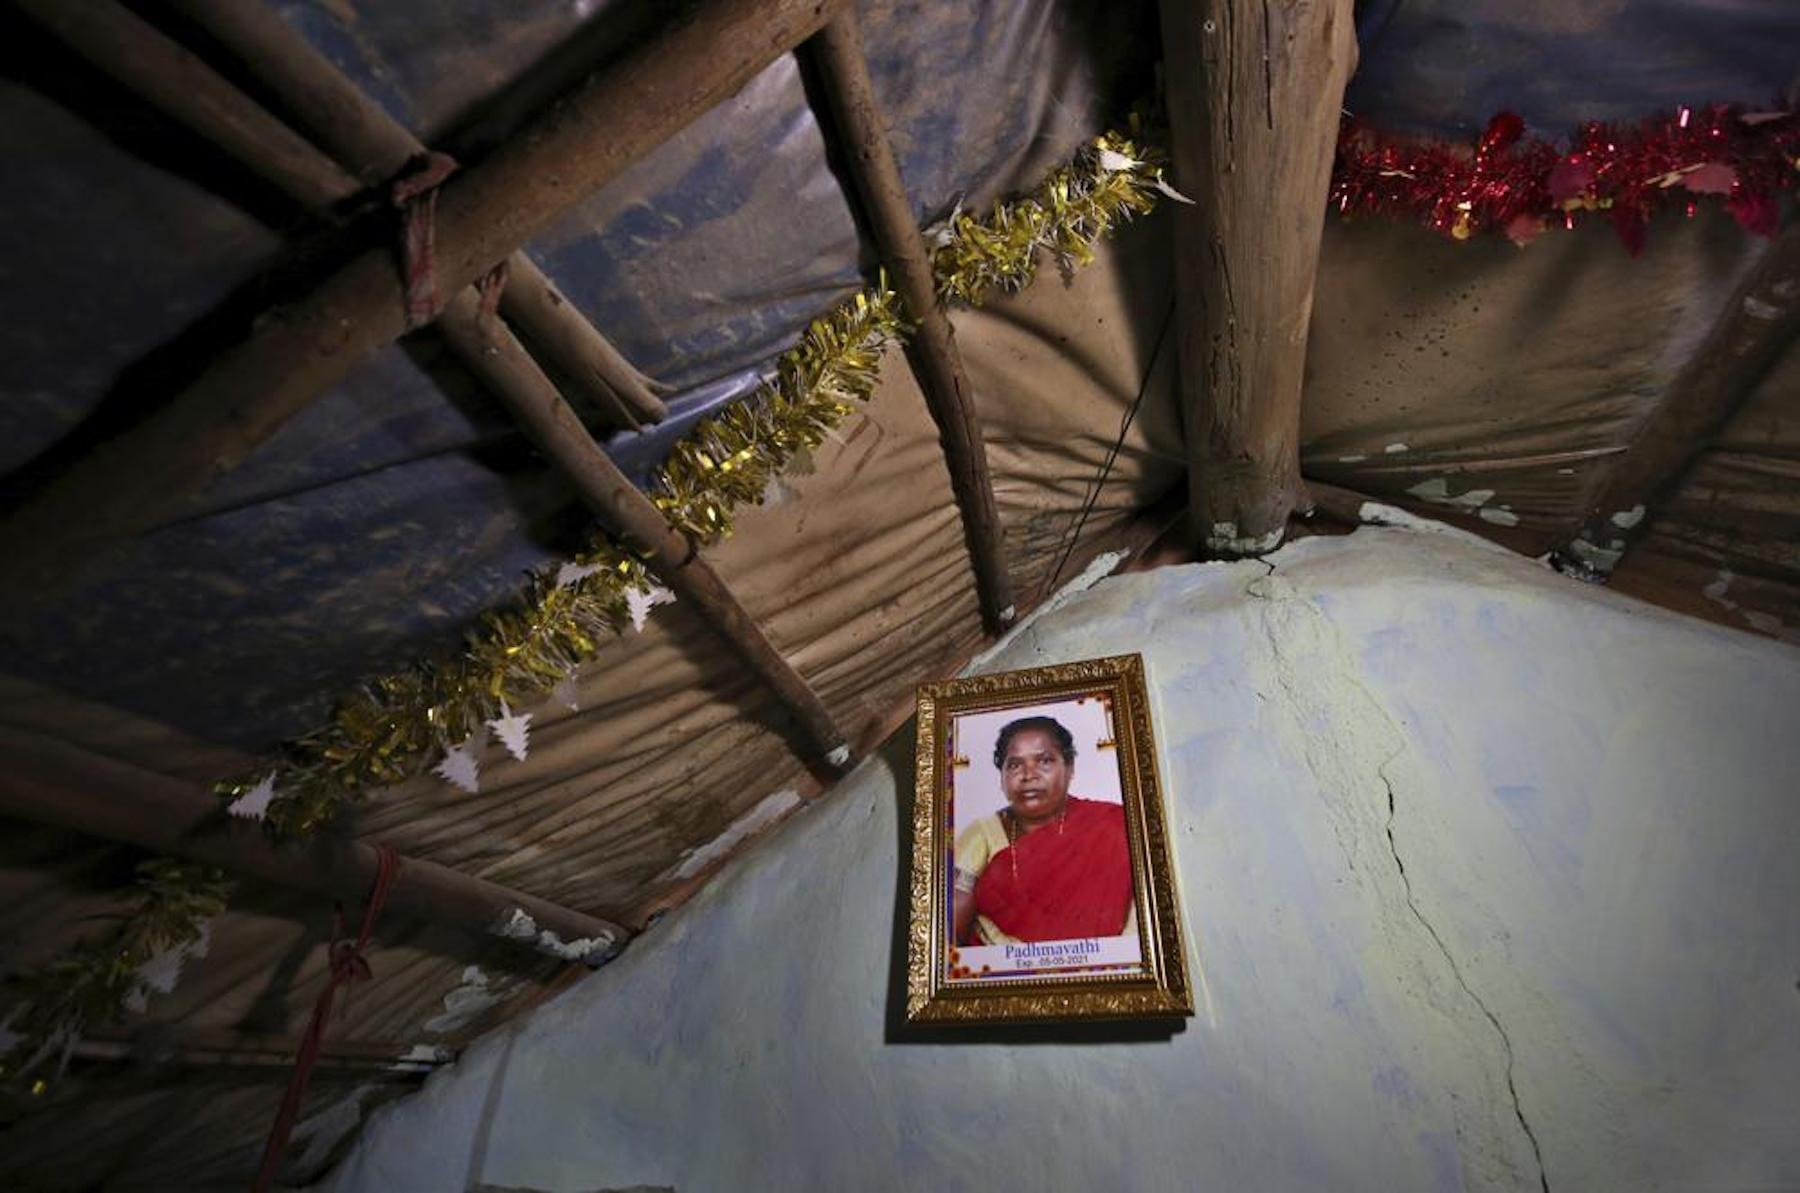 A portrait of Padmavathi, who died of Covid-19, hangs on the wall of her family hut made from bamboo and plastic sheeting in a slum in Bengaluru, India, on Thursday, May 20, 2021. Padmavathi collected hair, taking it from women's combs and hairbrushes to later be used for wigs. She earned about $50 a month. —AP